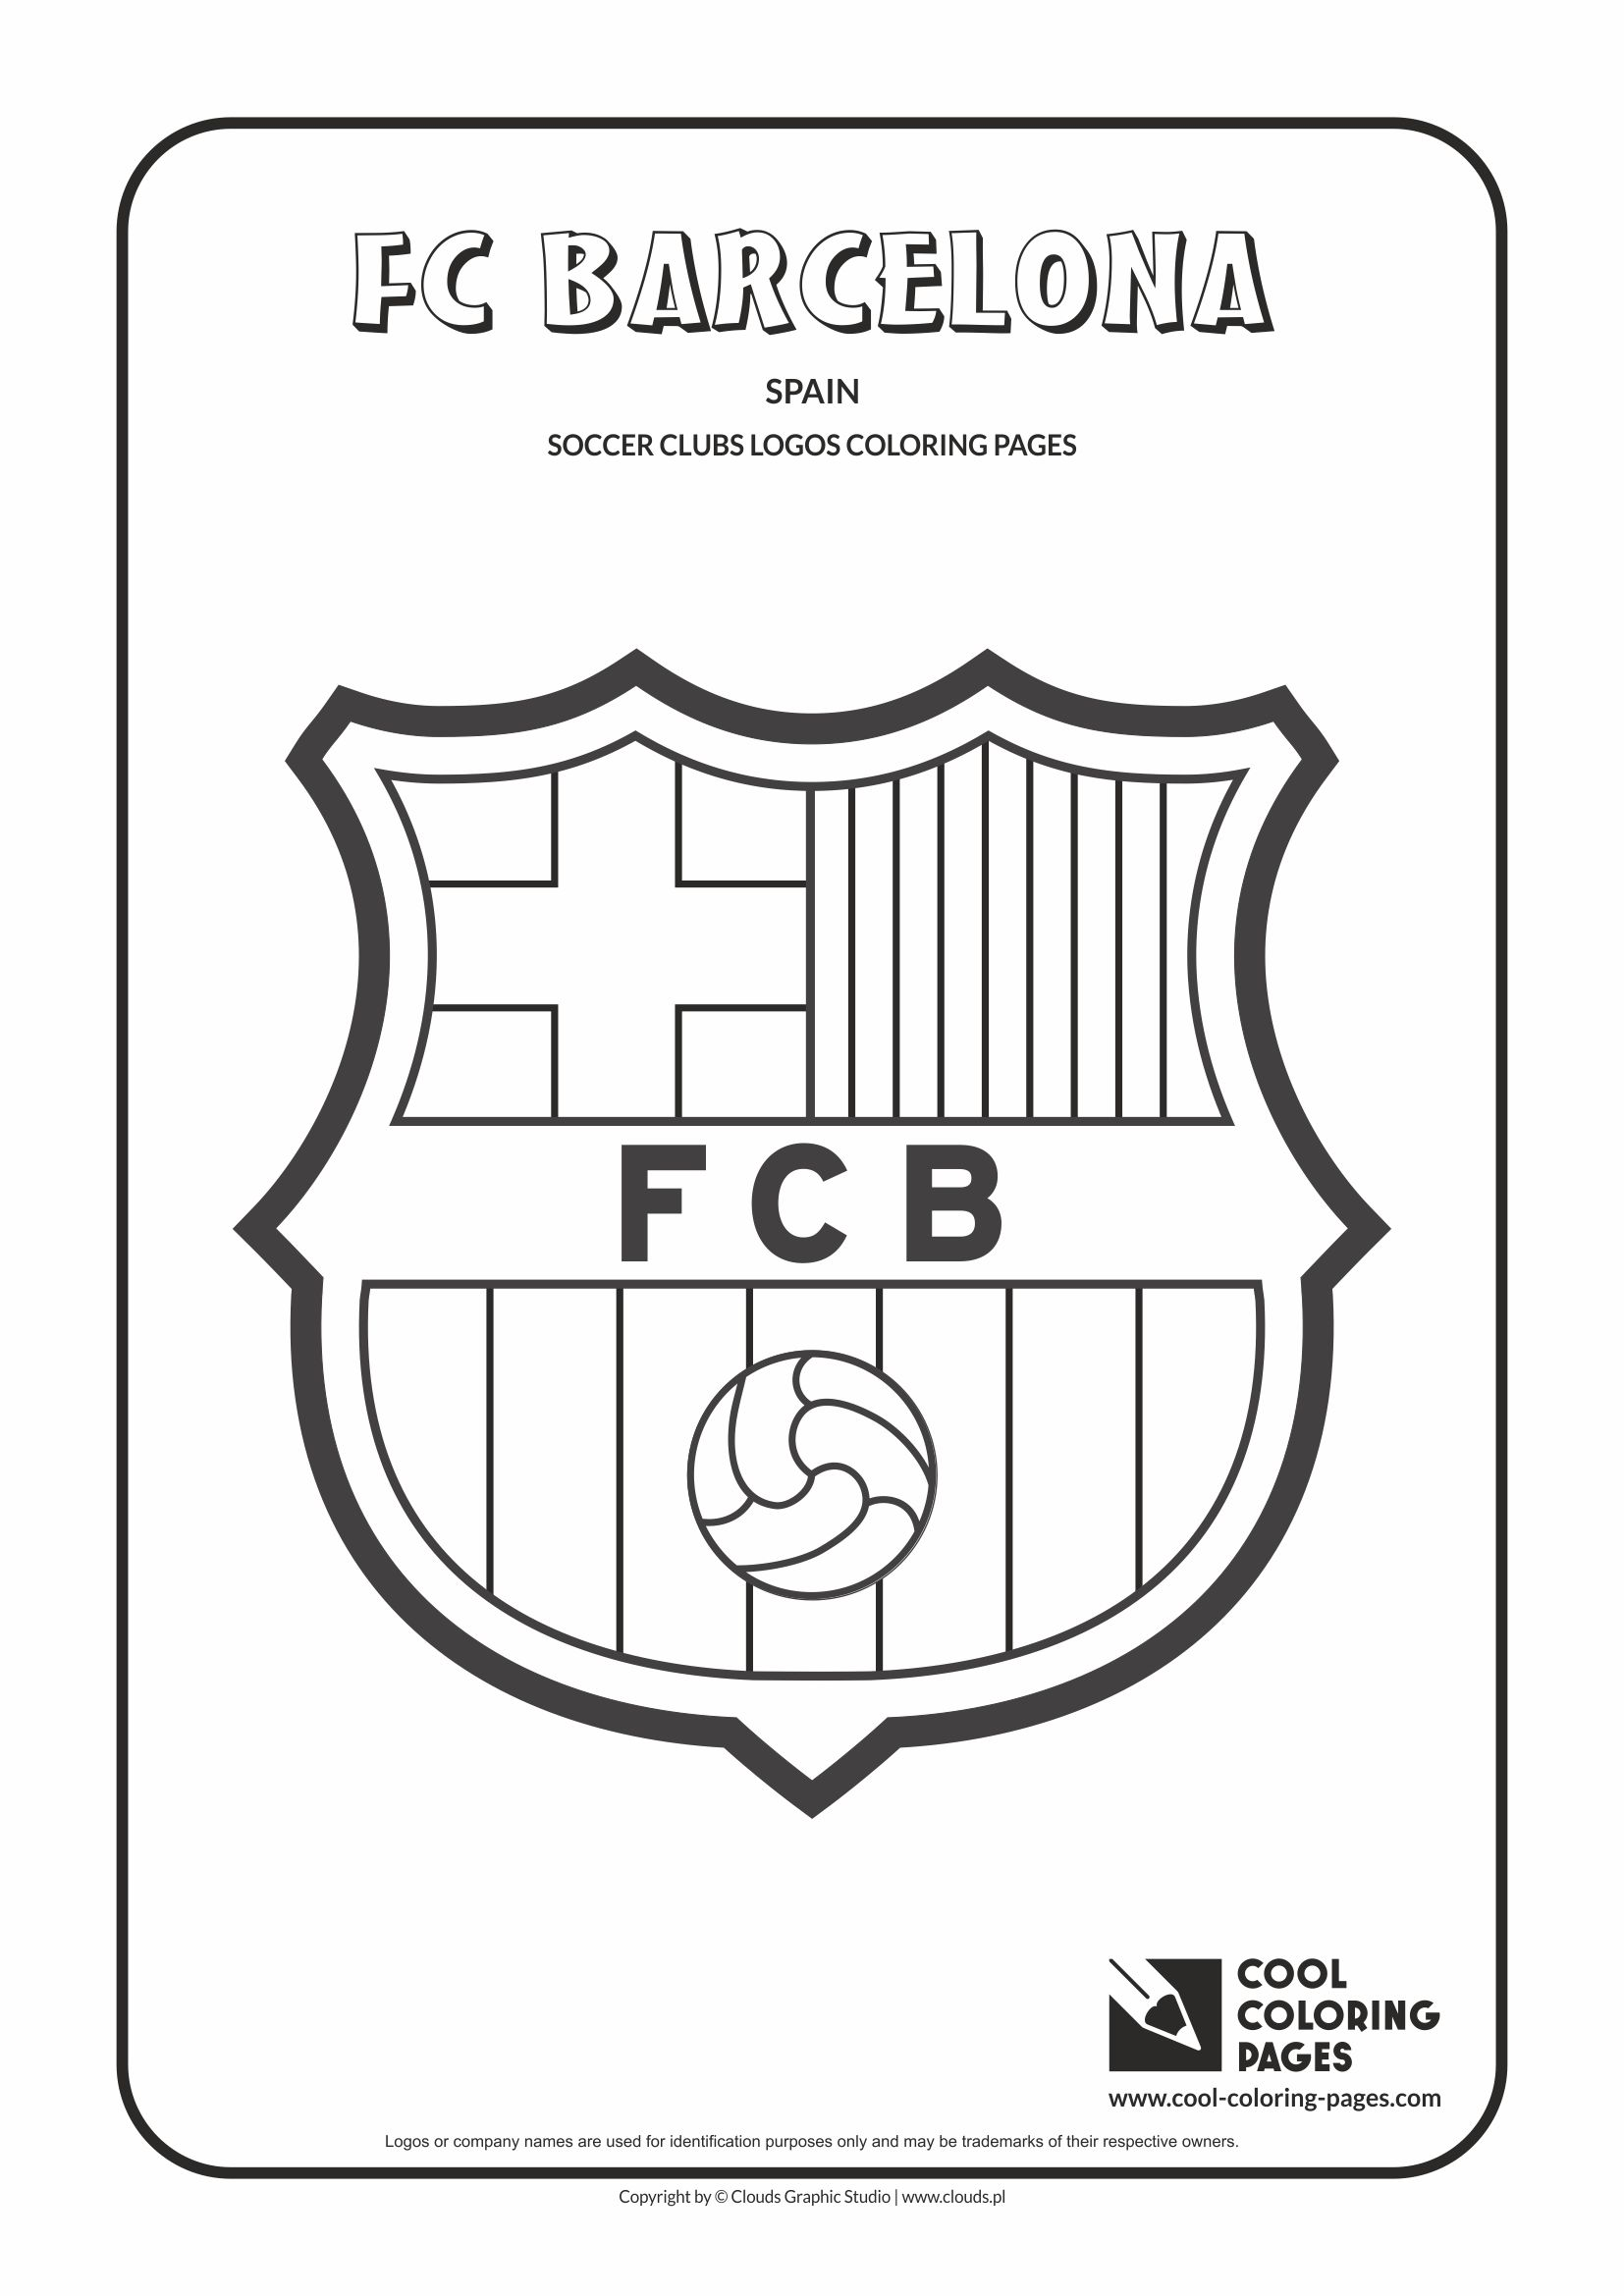 Cool Coloring Pages Soccer clubs logos - Cool Coloring Pages ...